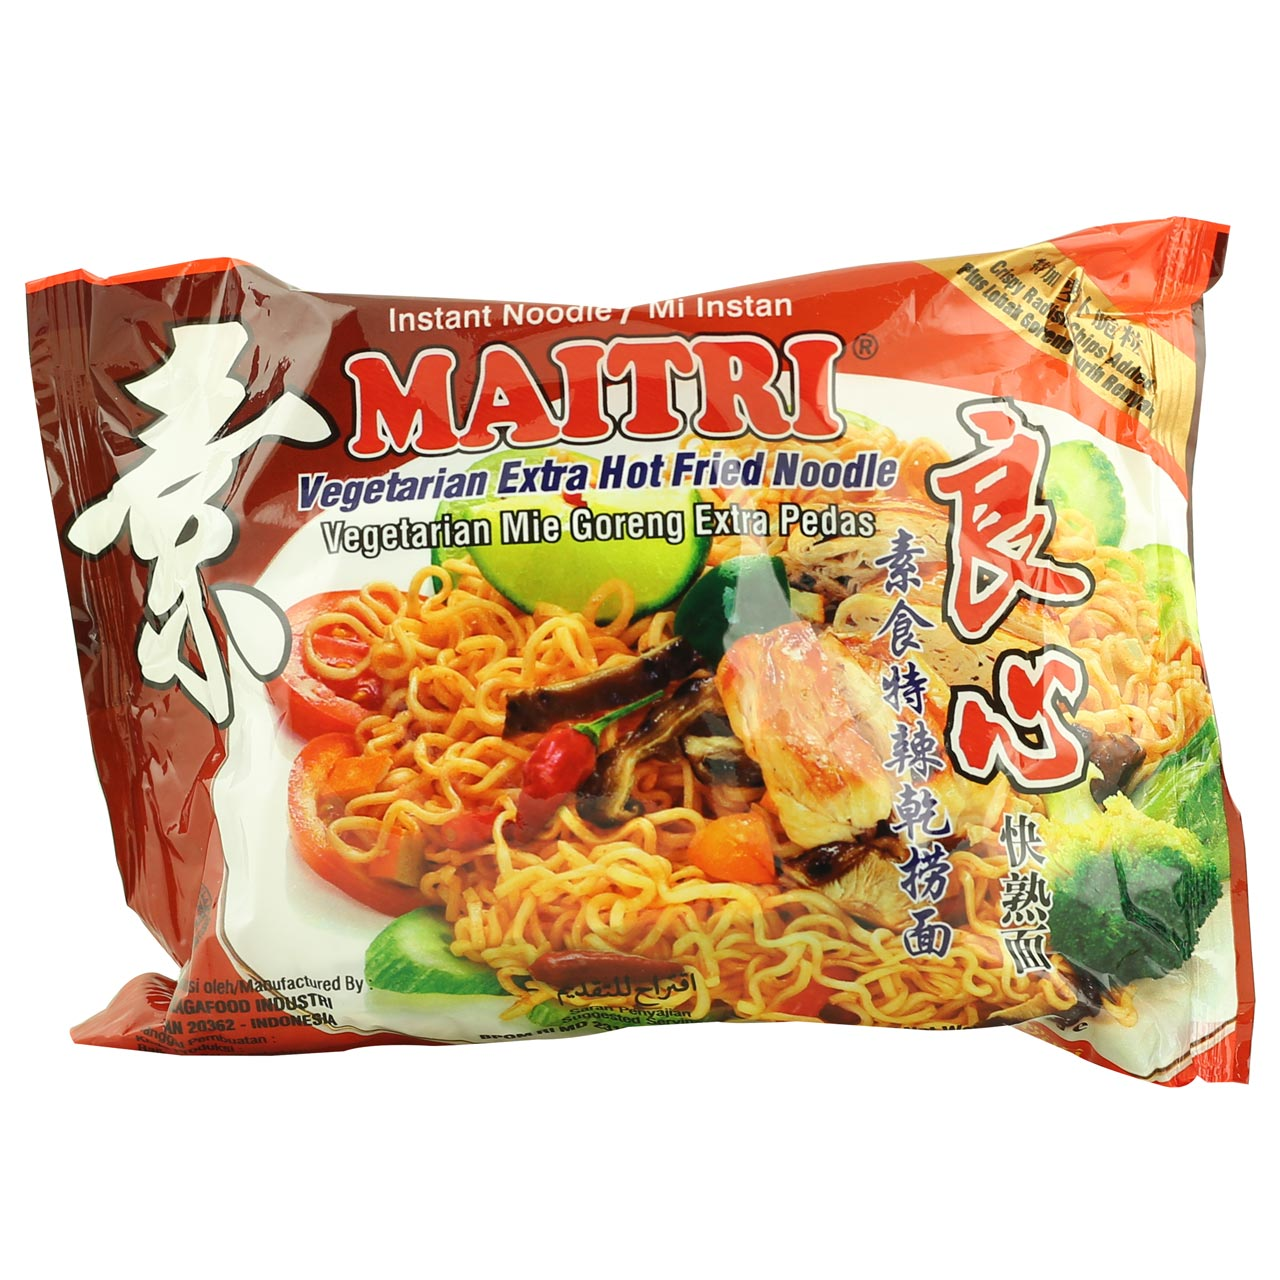 Maitri Vegetarian Fried Noodles